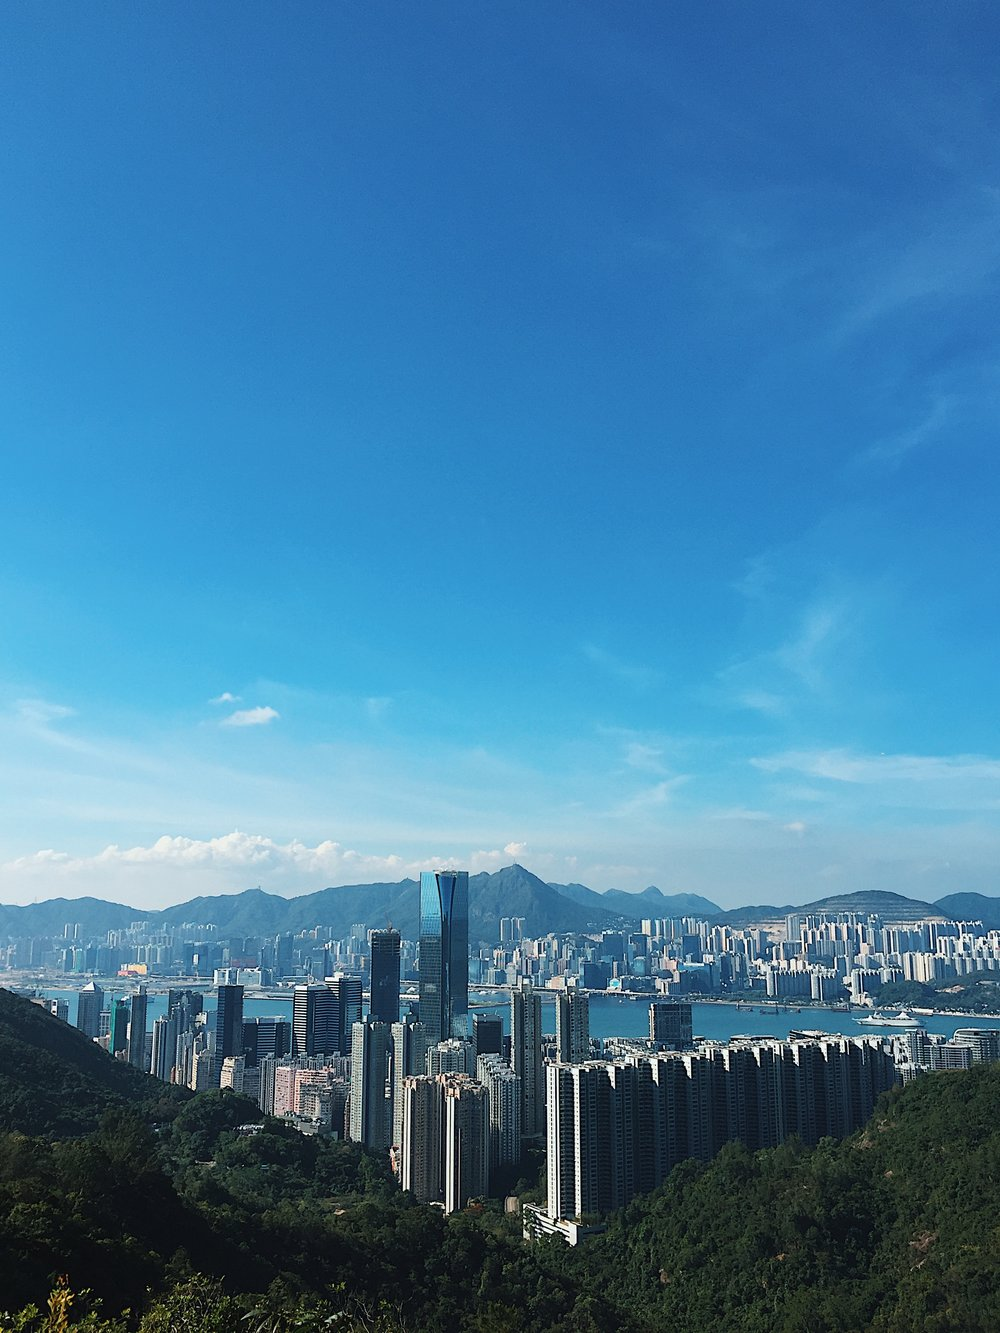 Hiking at Quarry Bay